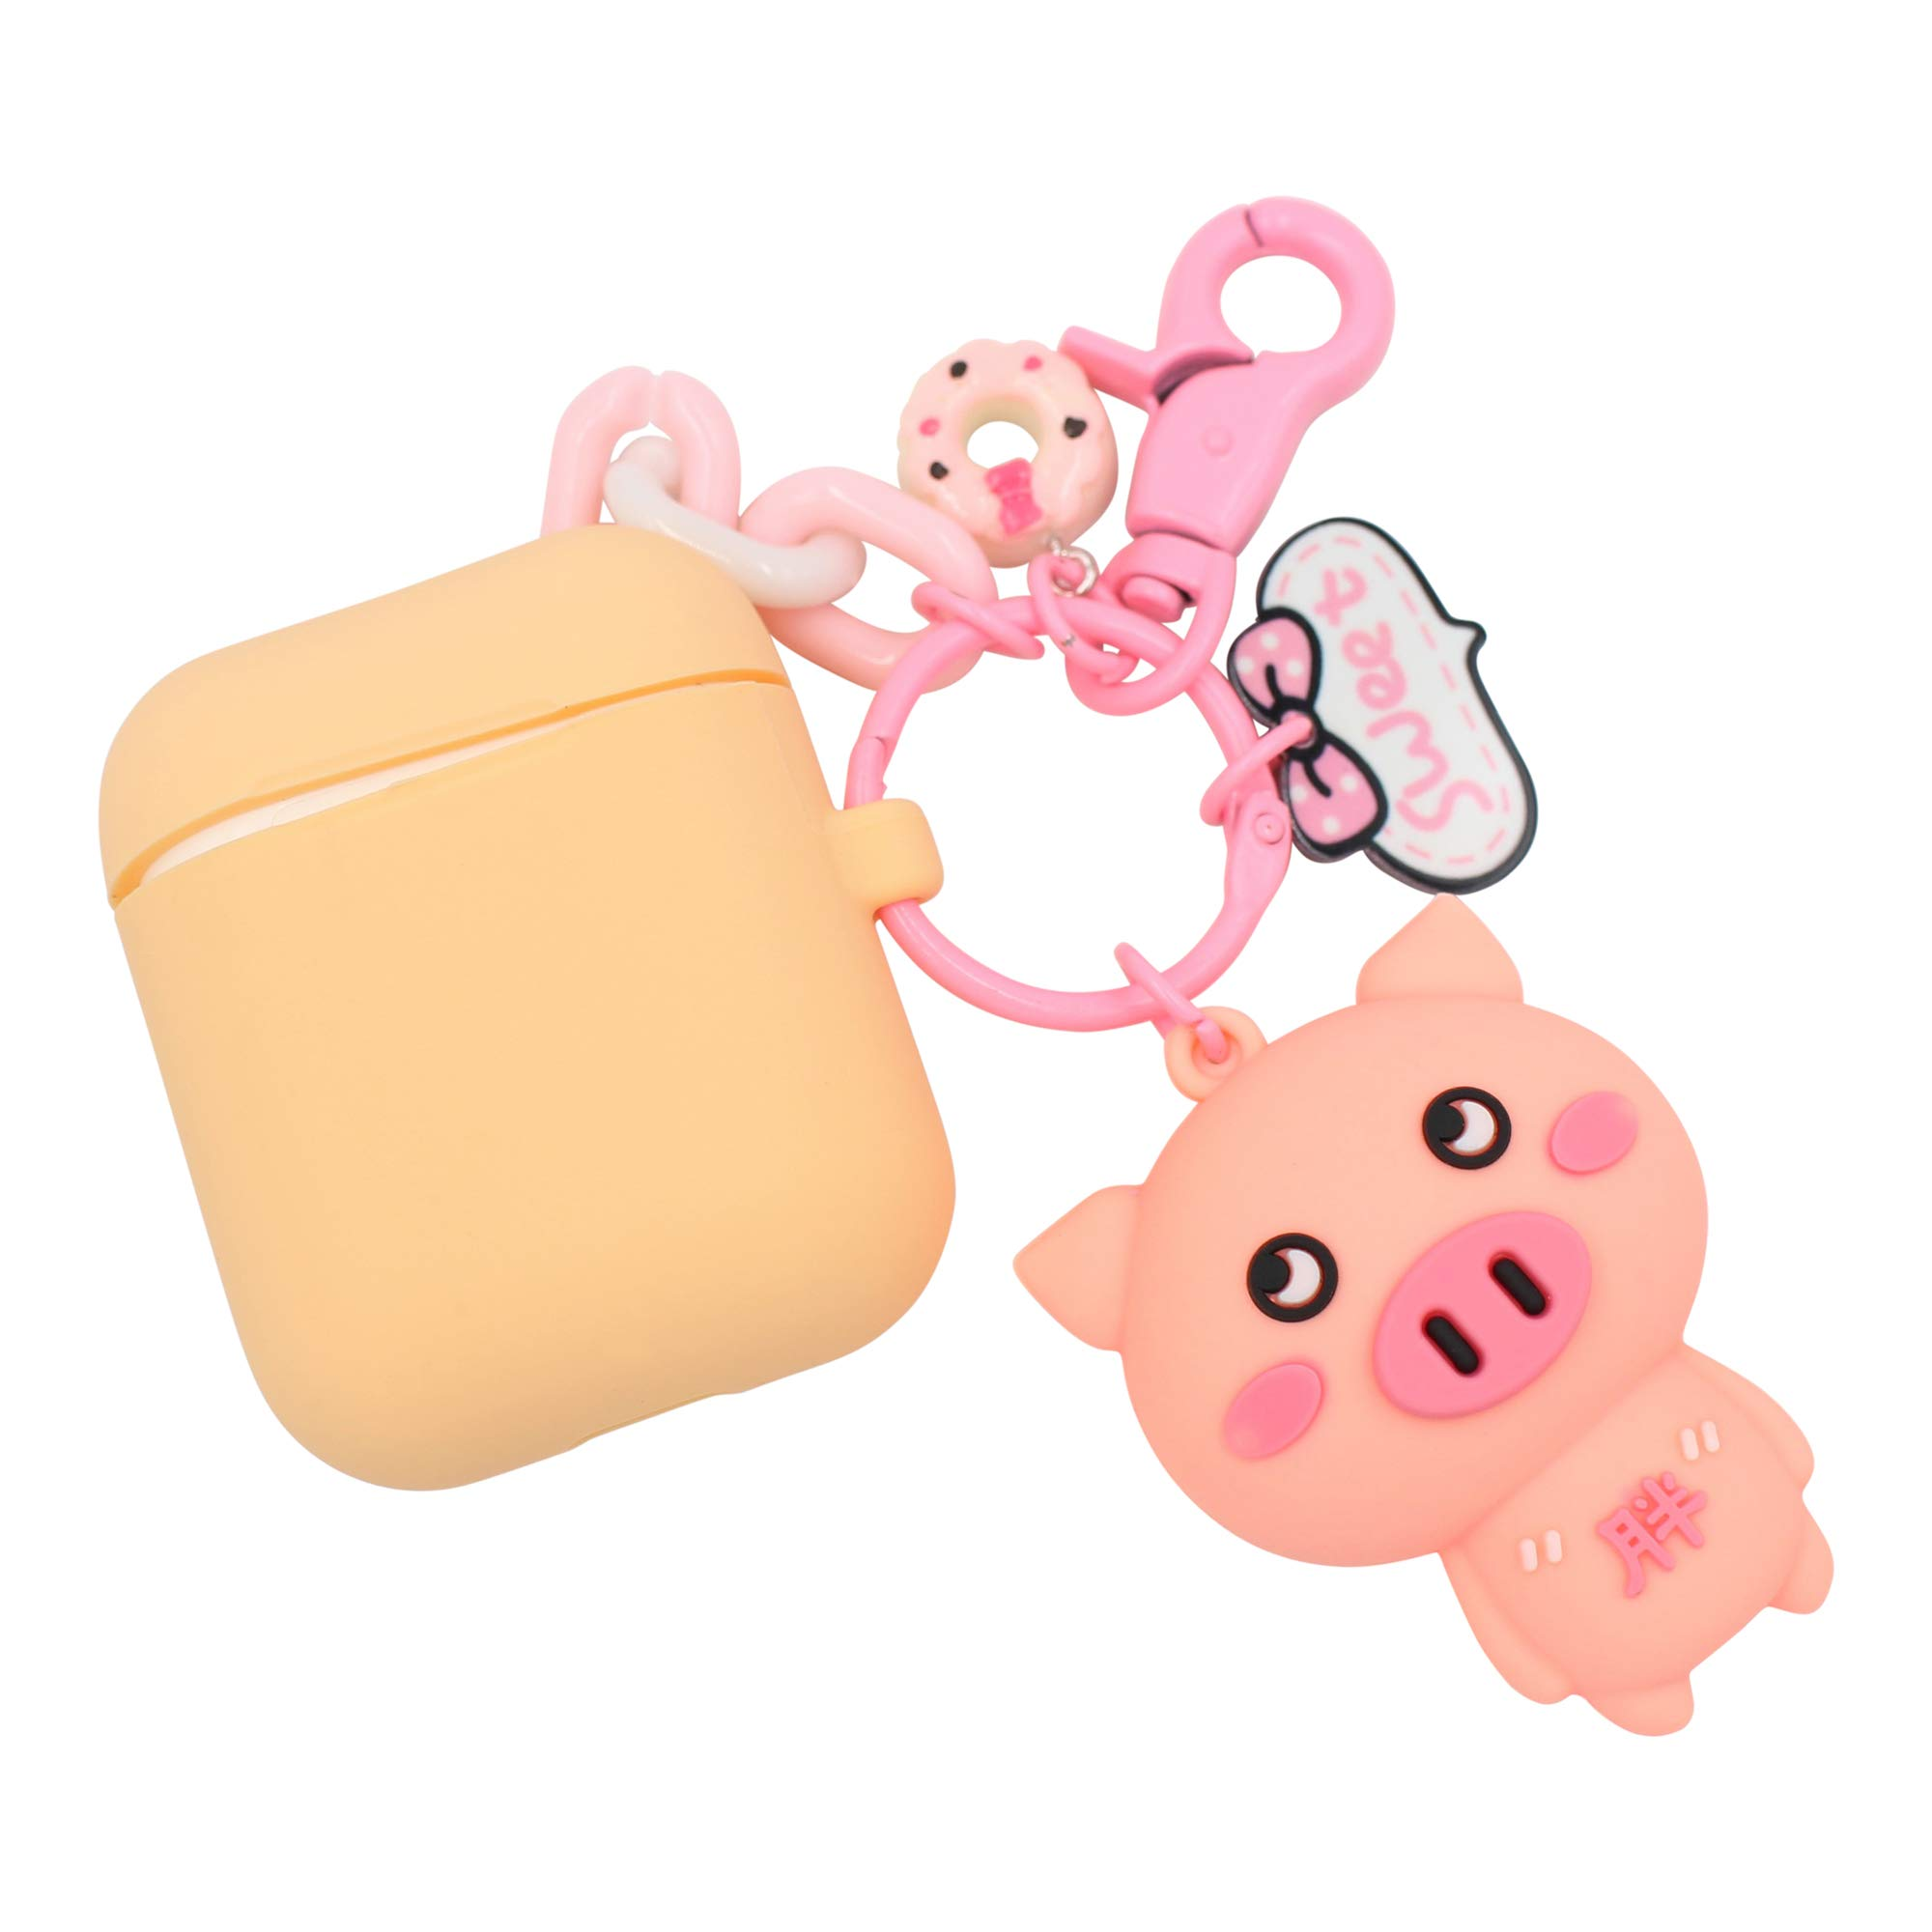 REAL SIC Premium Silicone AirPod Case Keychain with Carabiner - Compatible AirPods Keychain Protective Case - Colorful Key Fob Cover for Wireless Headphones (Peach Pig)